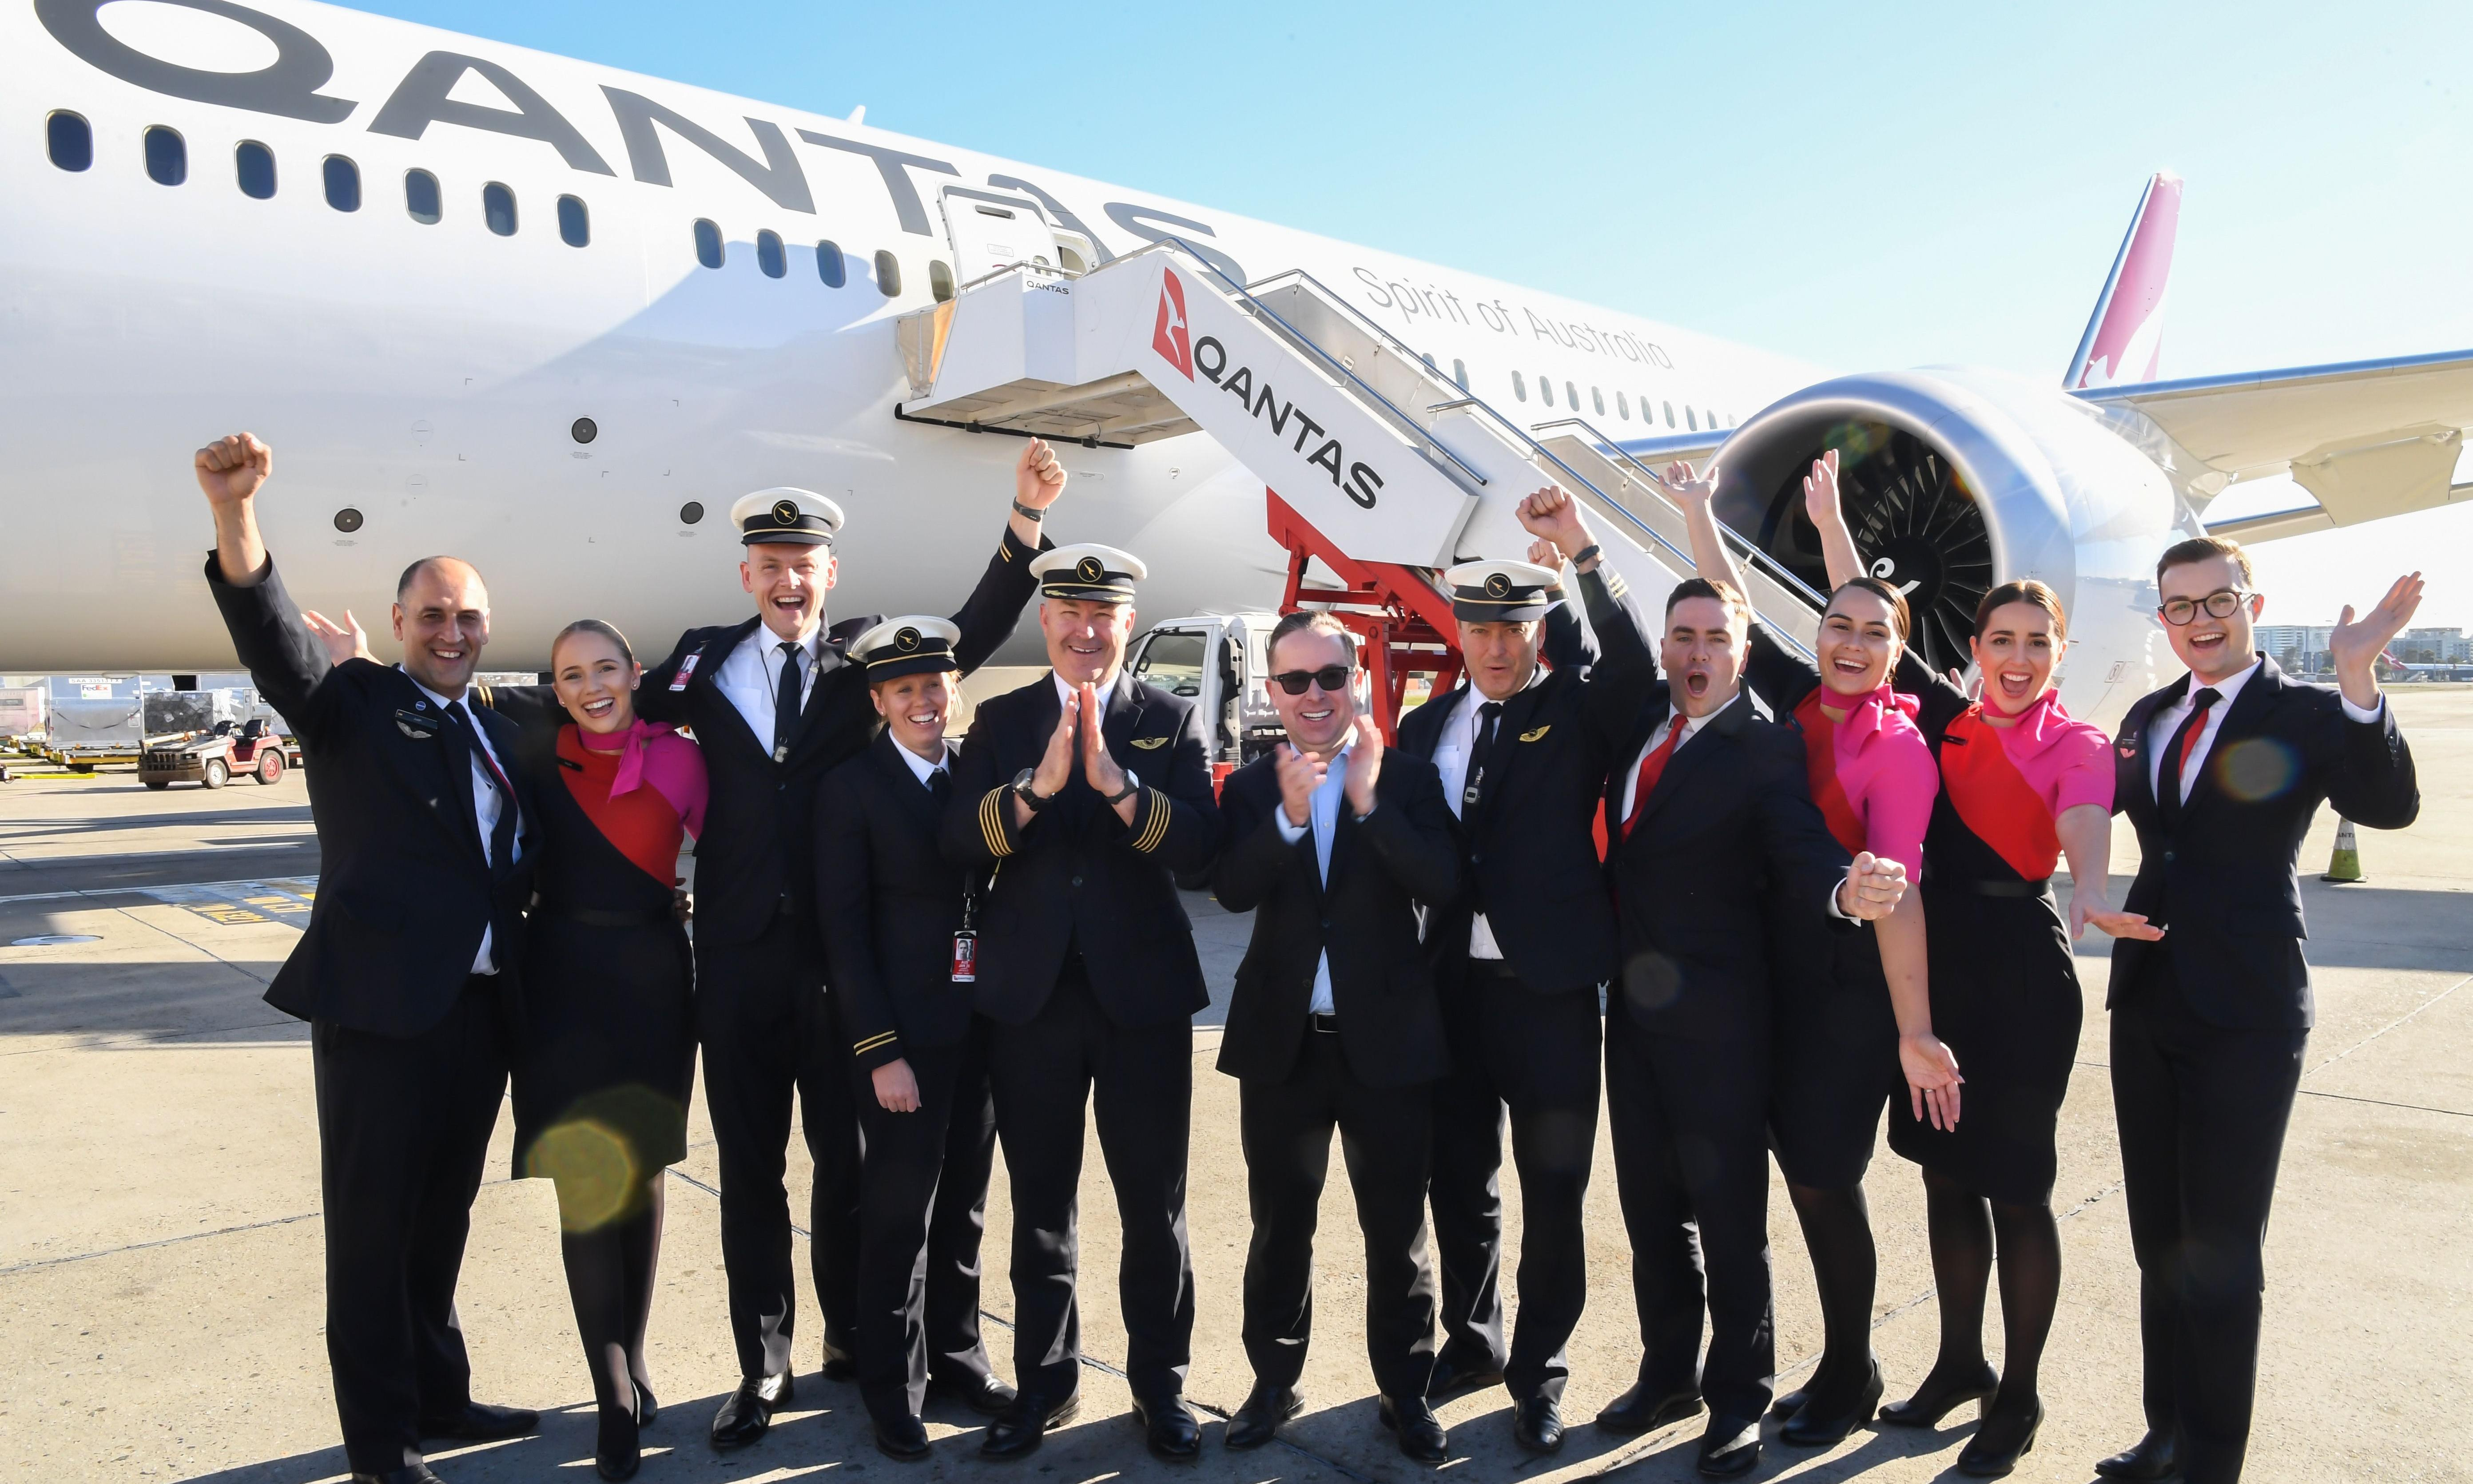 Qantas hails 'historic' moment after Dreamliner completes 19-hour non-stop flight